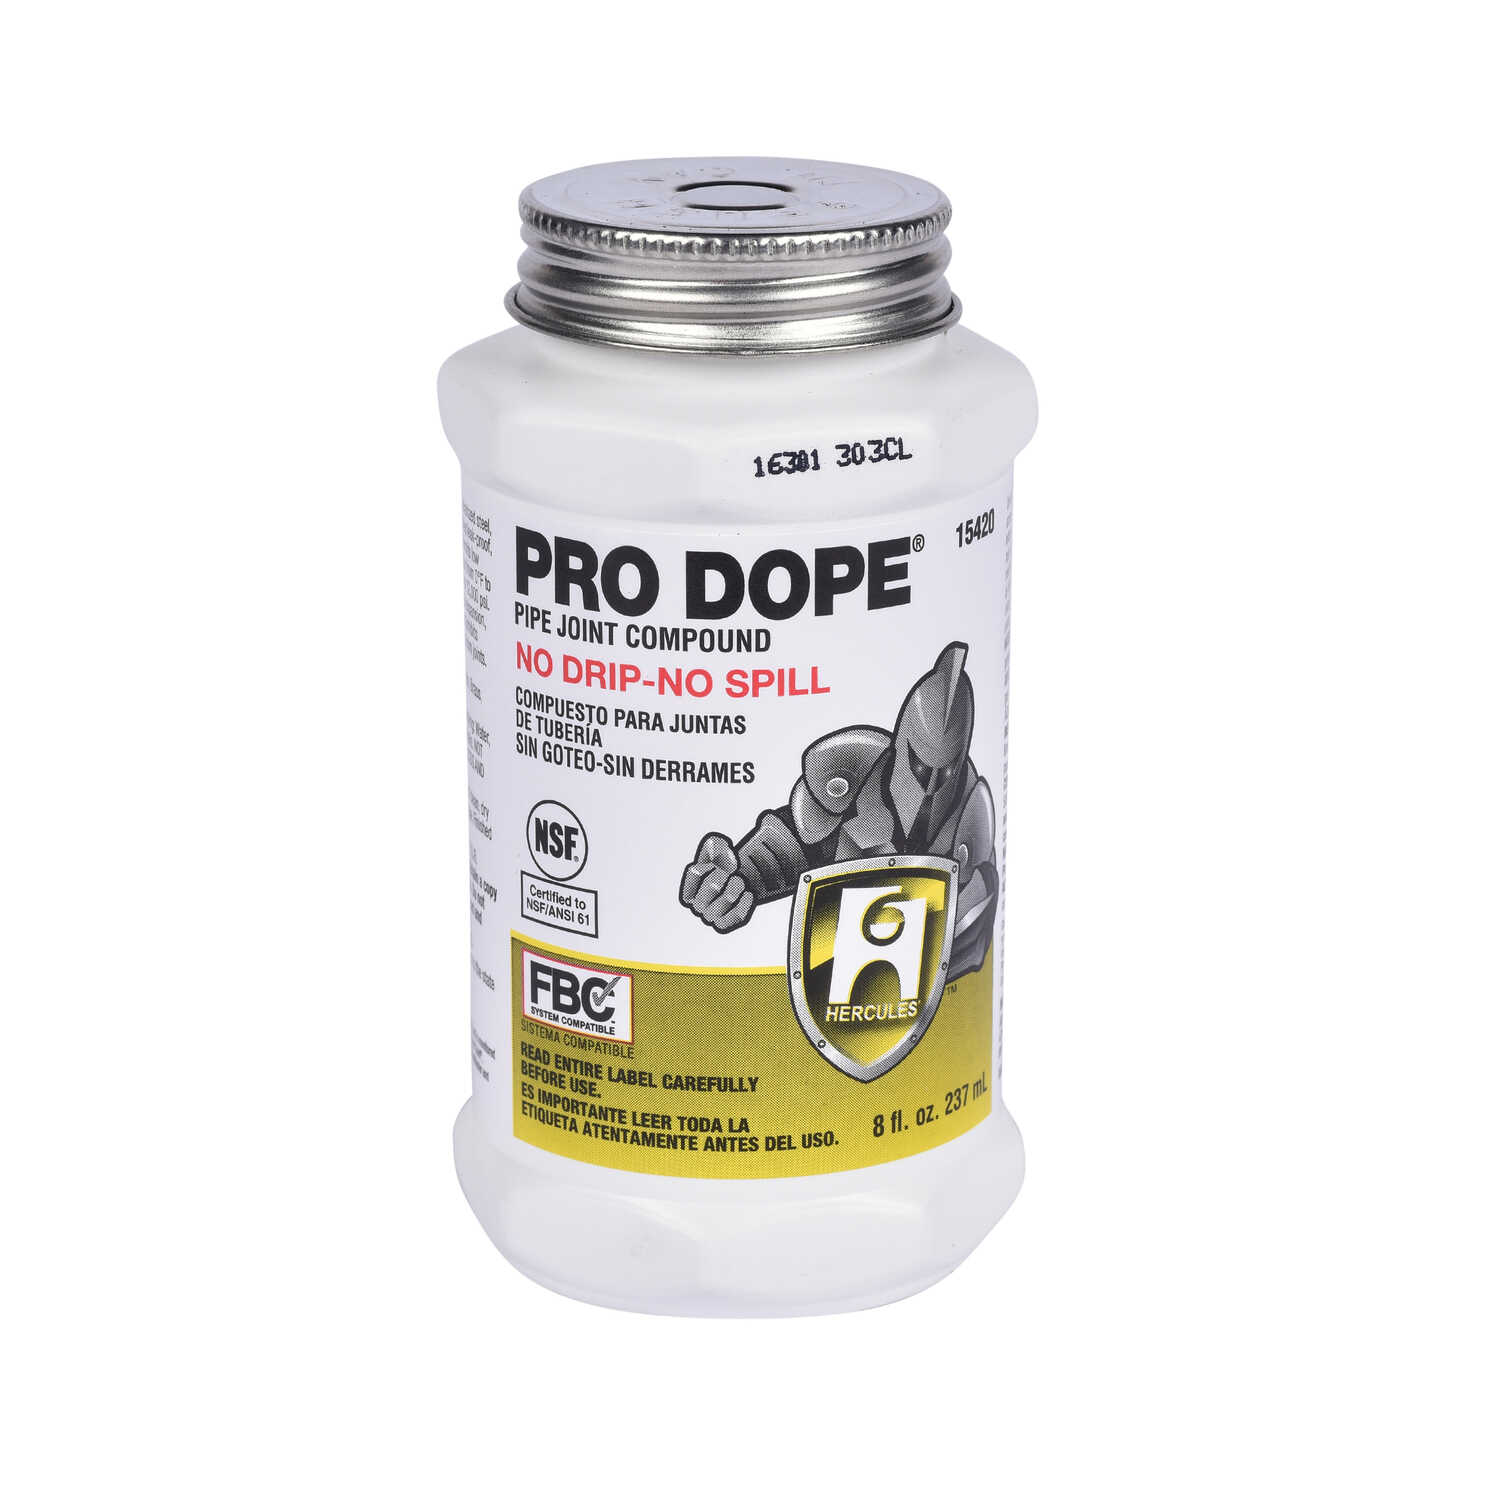 Hercules Pro Dope Gray Pipe Joint Compound 8 oz  - Ace Hardware